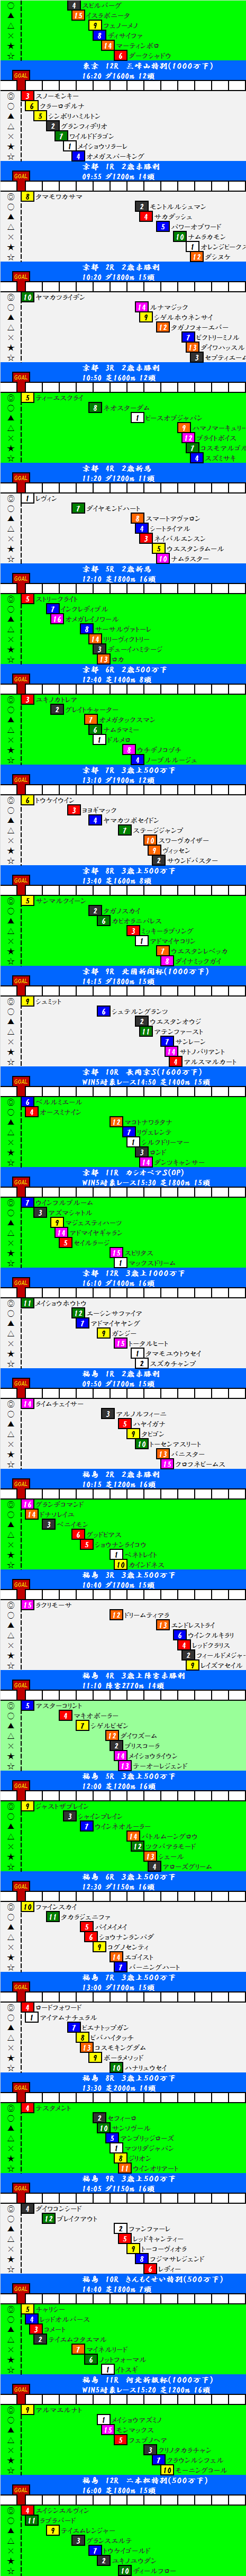 2014110202.png